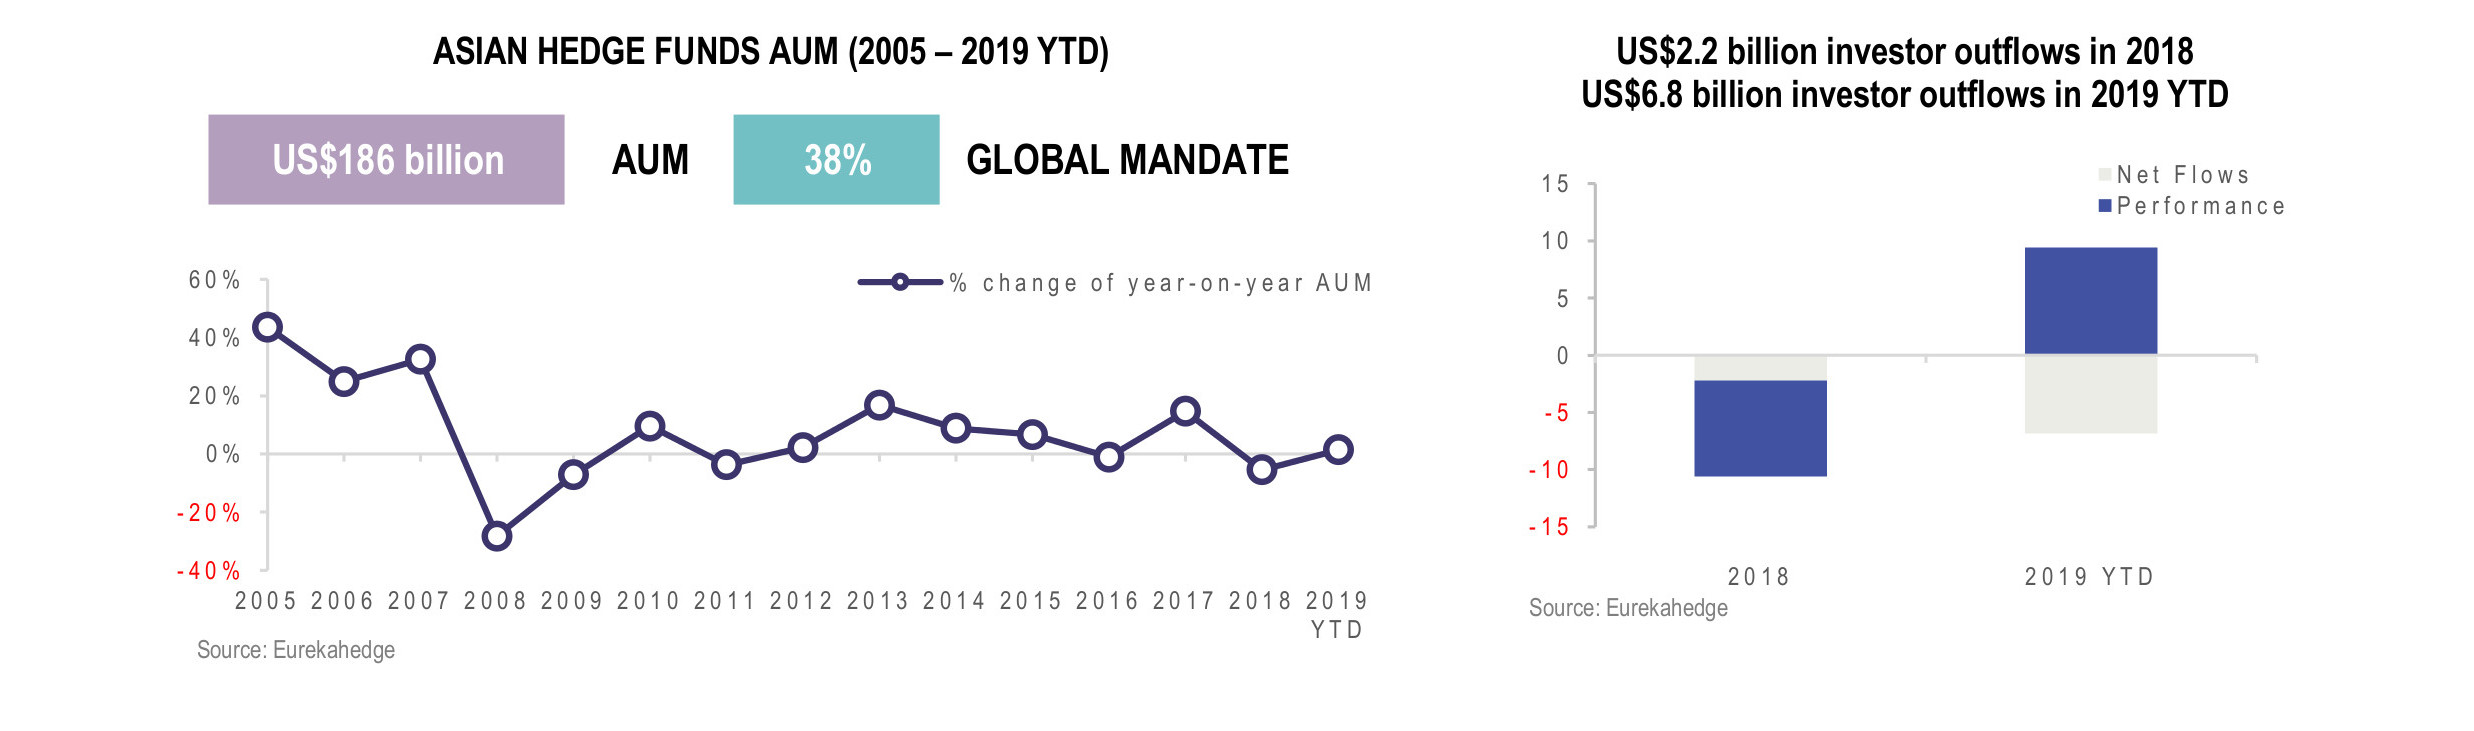 Asian Hedge Funds Infographic September 2019 - AUM